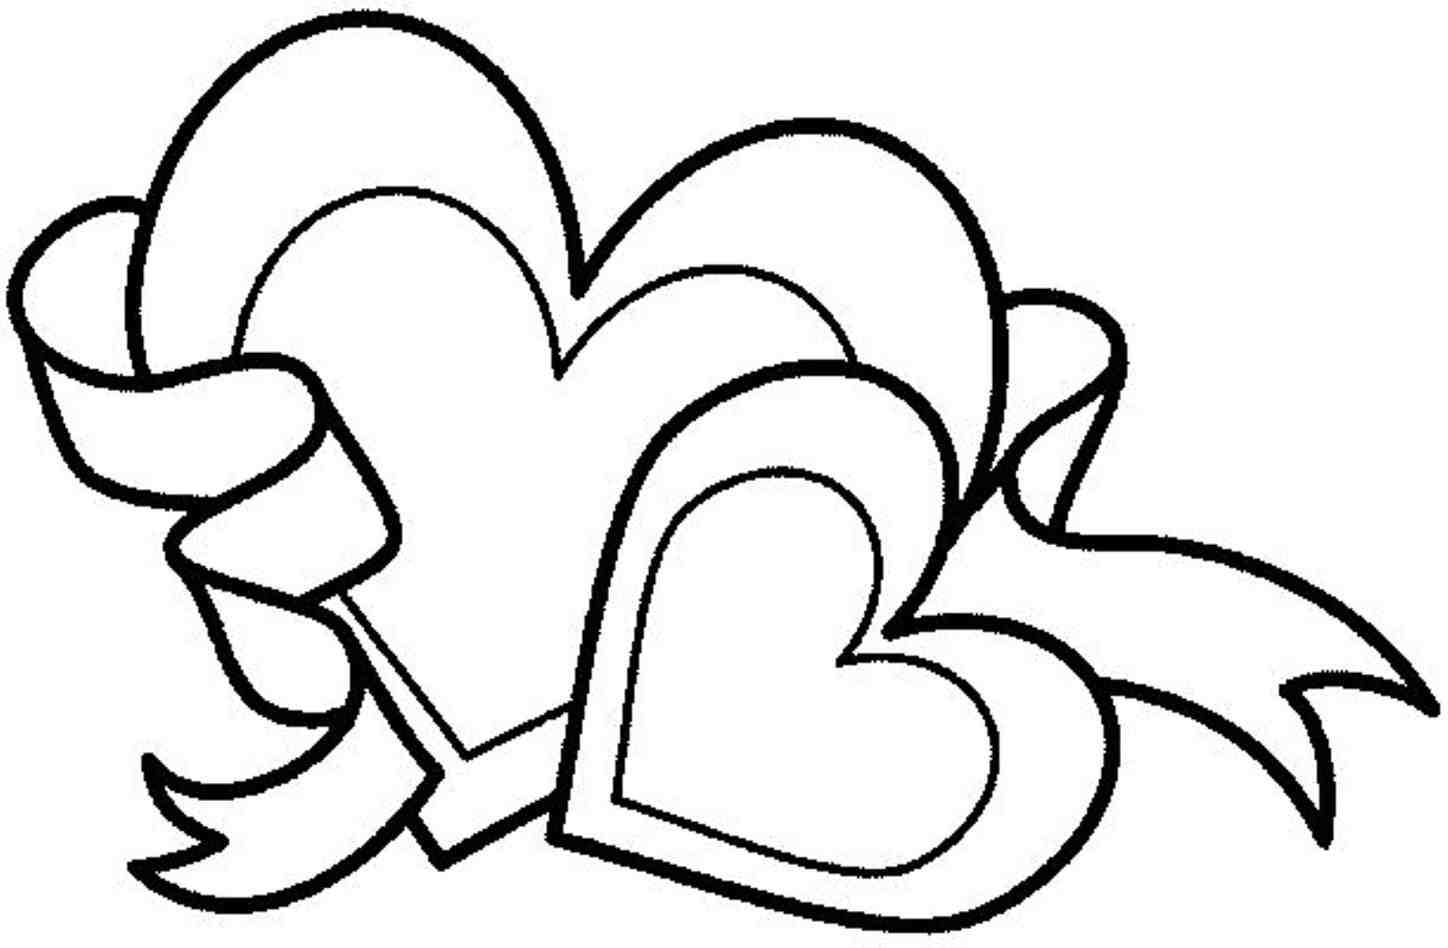 1448x948 Fire Designs To Draw Heart Cool Drawings Of Hearts With Fire Red